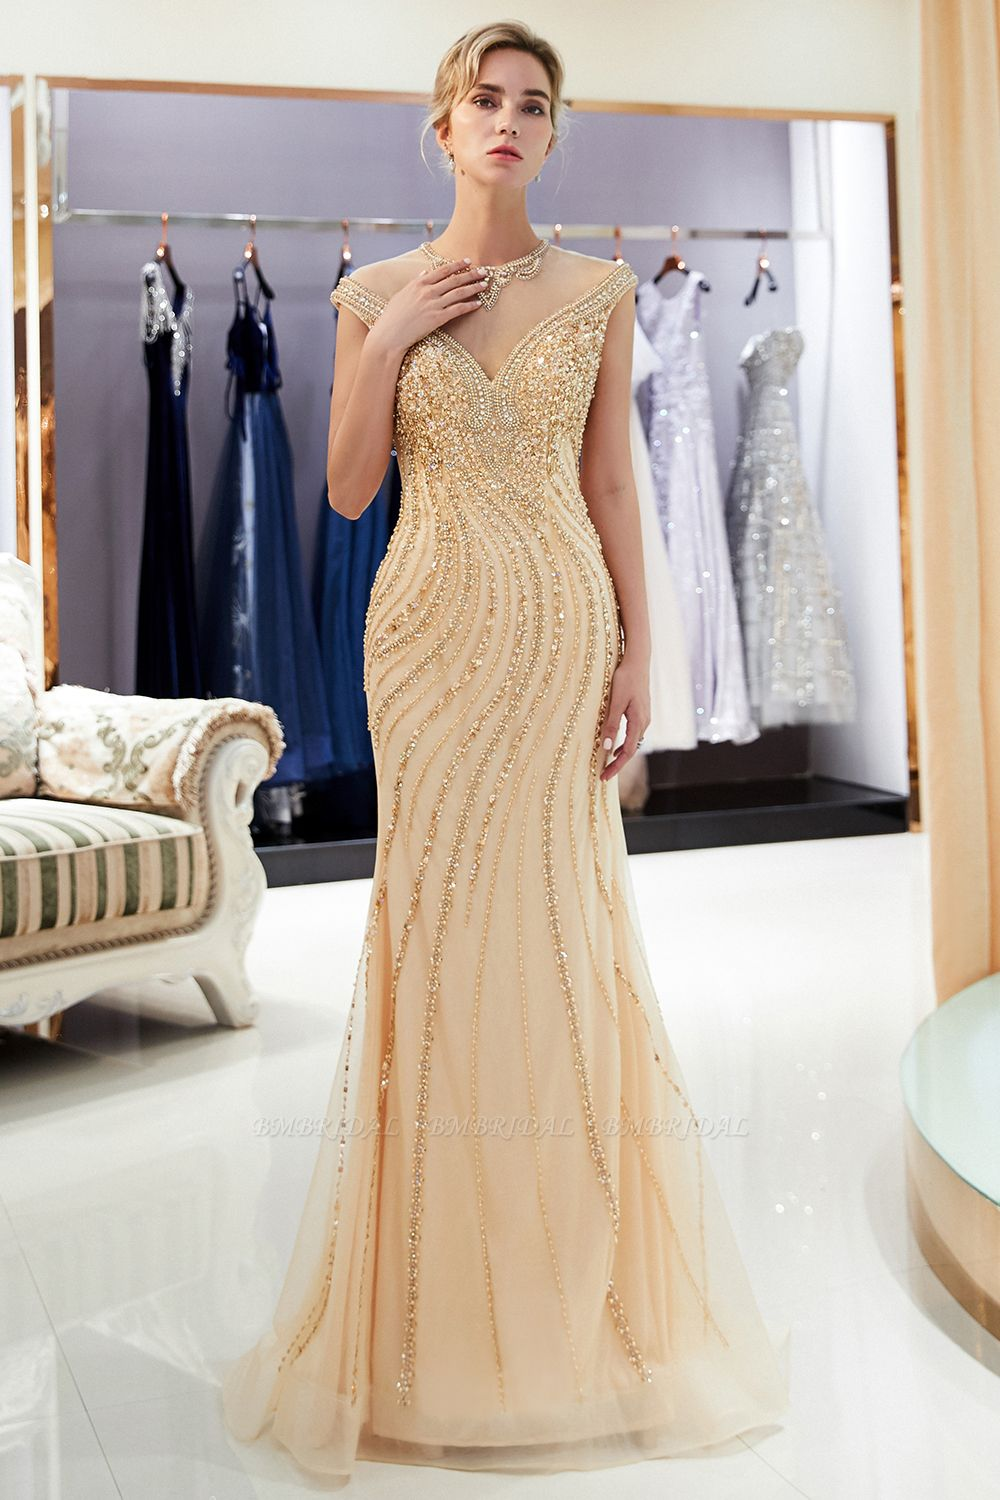 BMbridal Elegant Mermaid Jewel Long Gold Prom Dresses Sleeveless Evening Gowns with Rhinestones